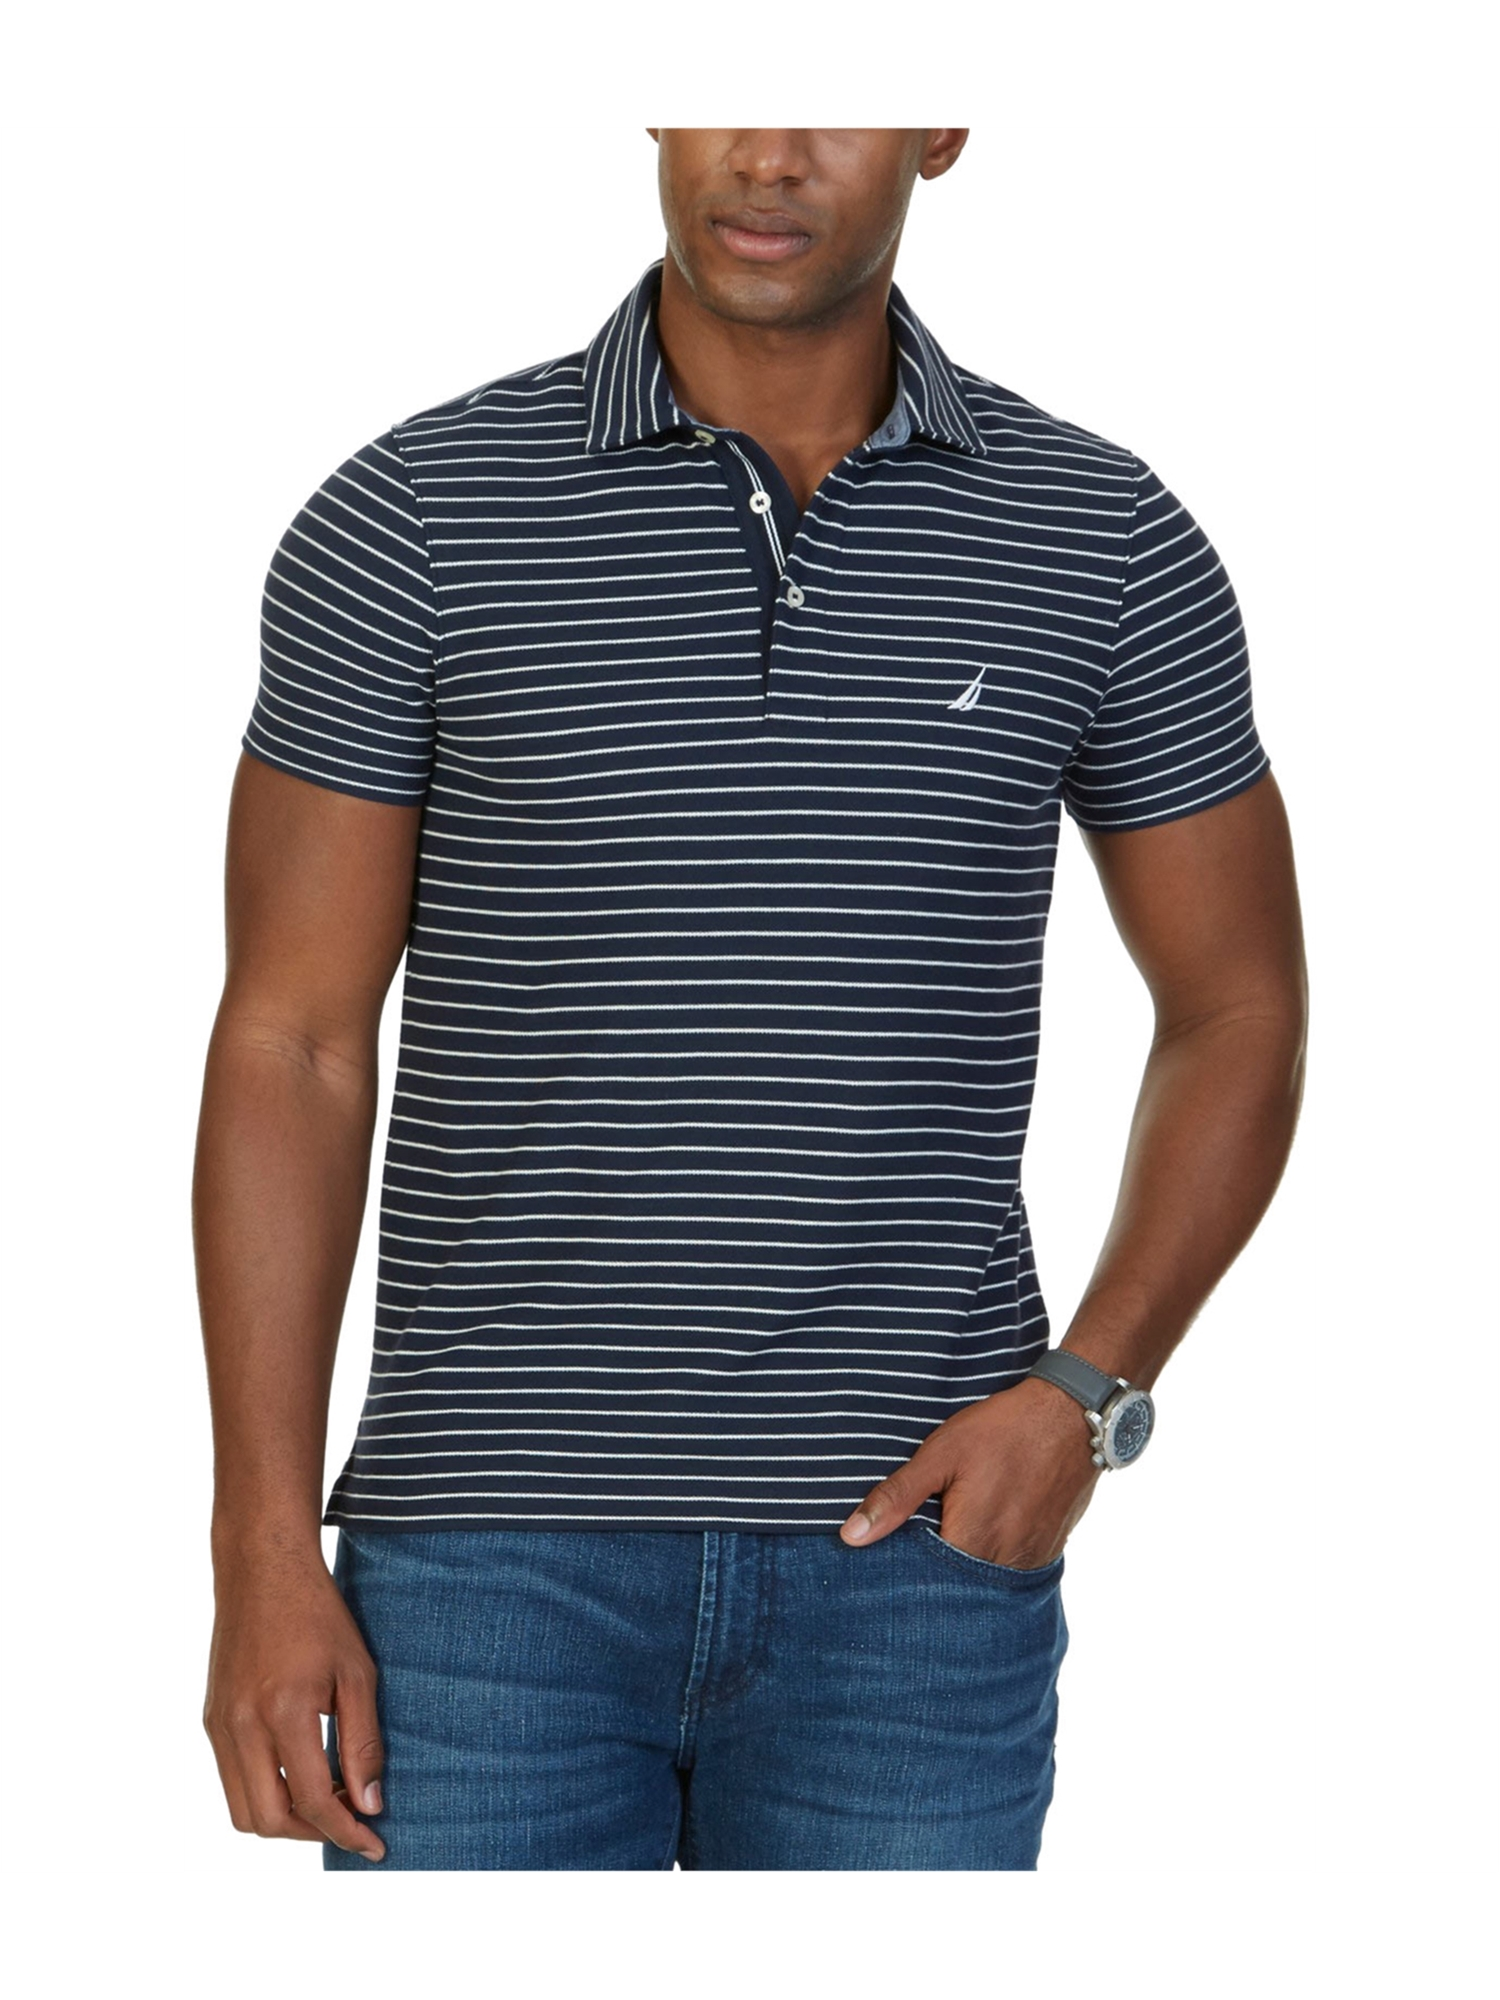 Nautica Mens Performance Rugby Polo Shirt Navy S